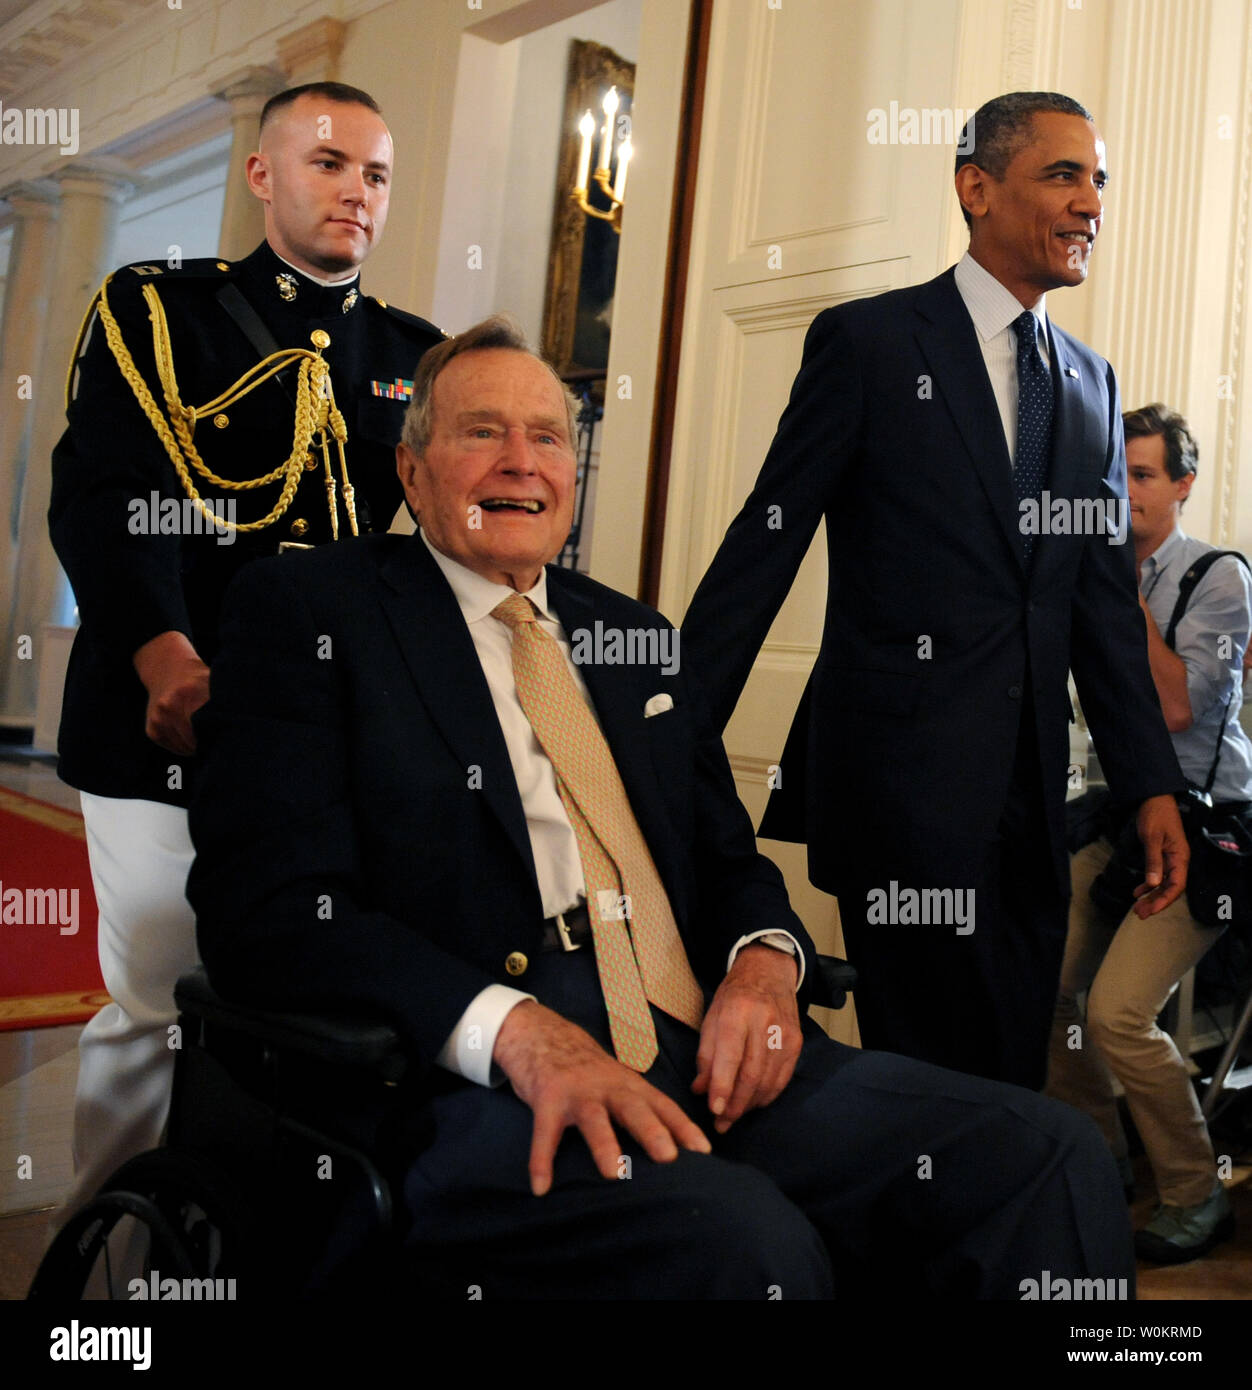 U.S. President Barack Obama walks with former President George H.W. Bush to the East Room of the White House to present the 5,000th award from Bush's 'Points of Light' Foundation in Washington, DC on July 15, 2013.  Bush started the national movement to advance volunteerism and community service 20 years ago when he was the 41st president.    UPI/Pat Benic - Stock Image